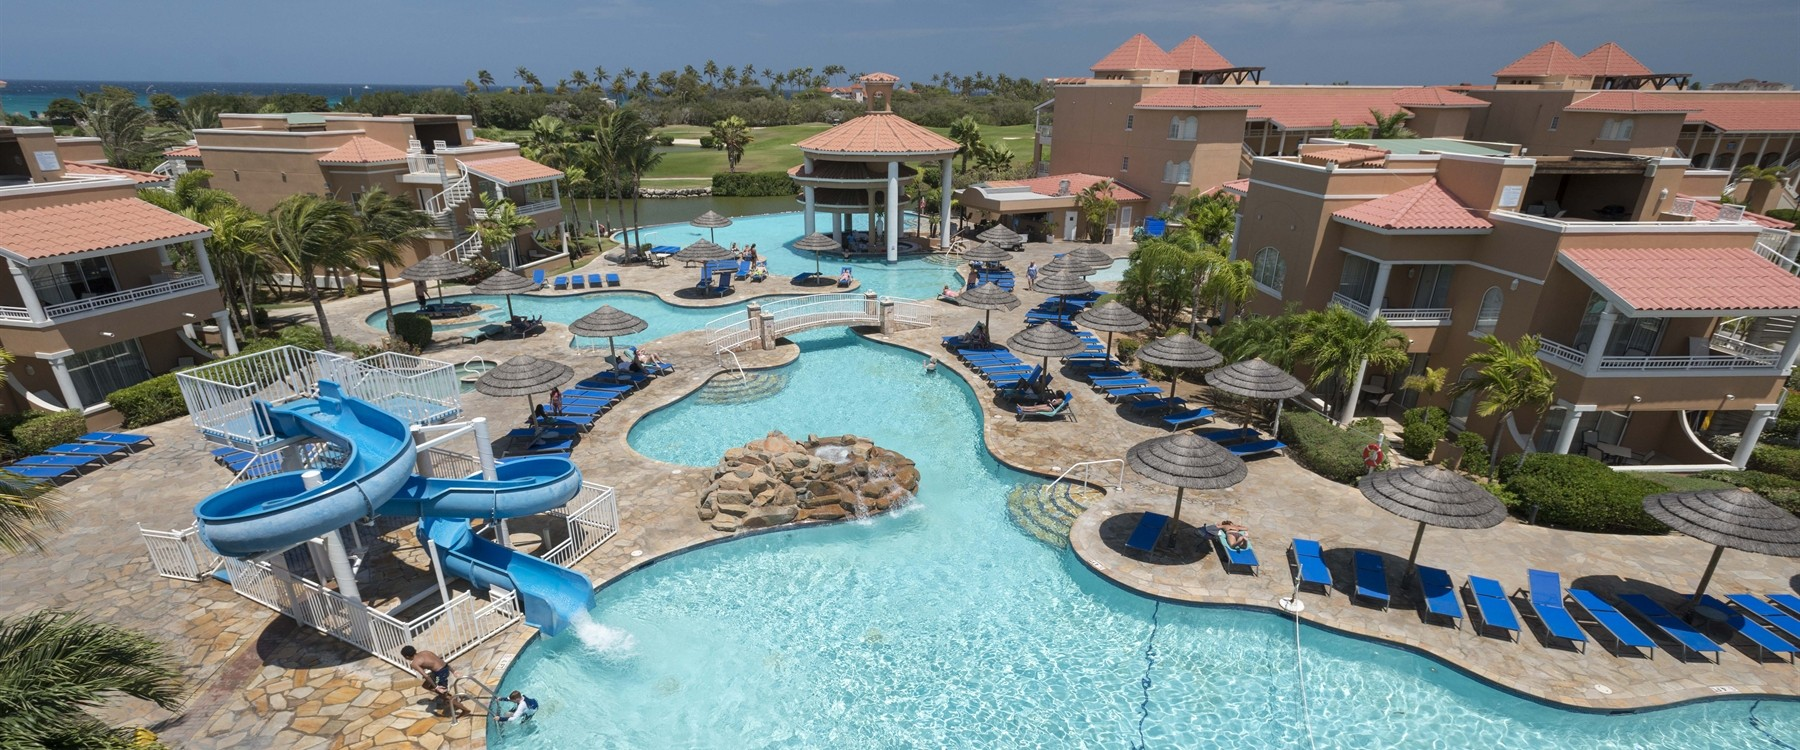 Divi Village Golf and Beach Resort image